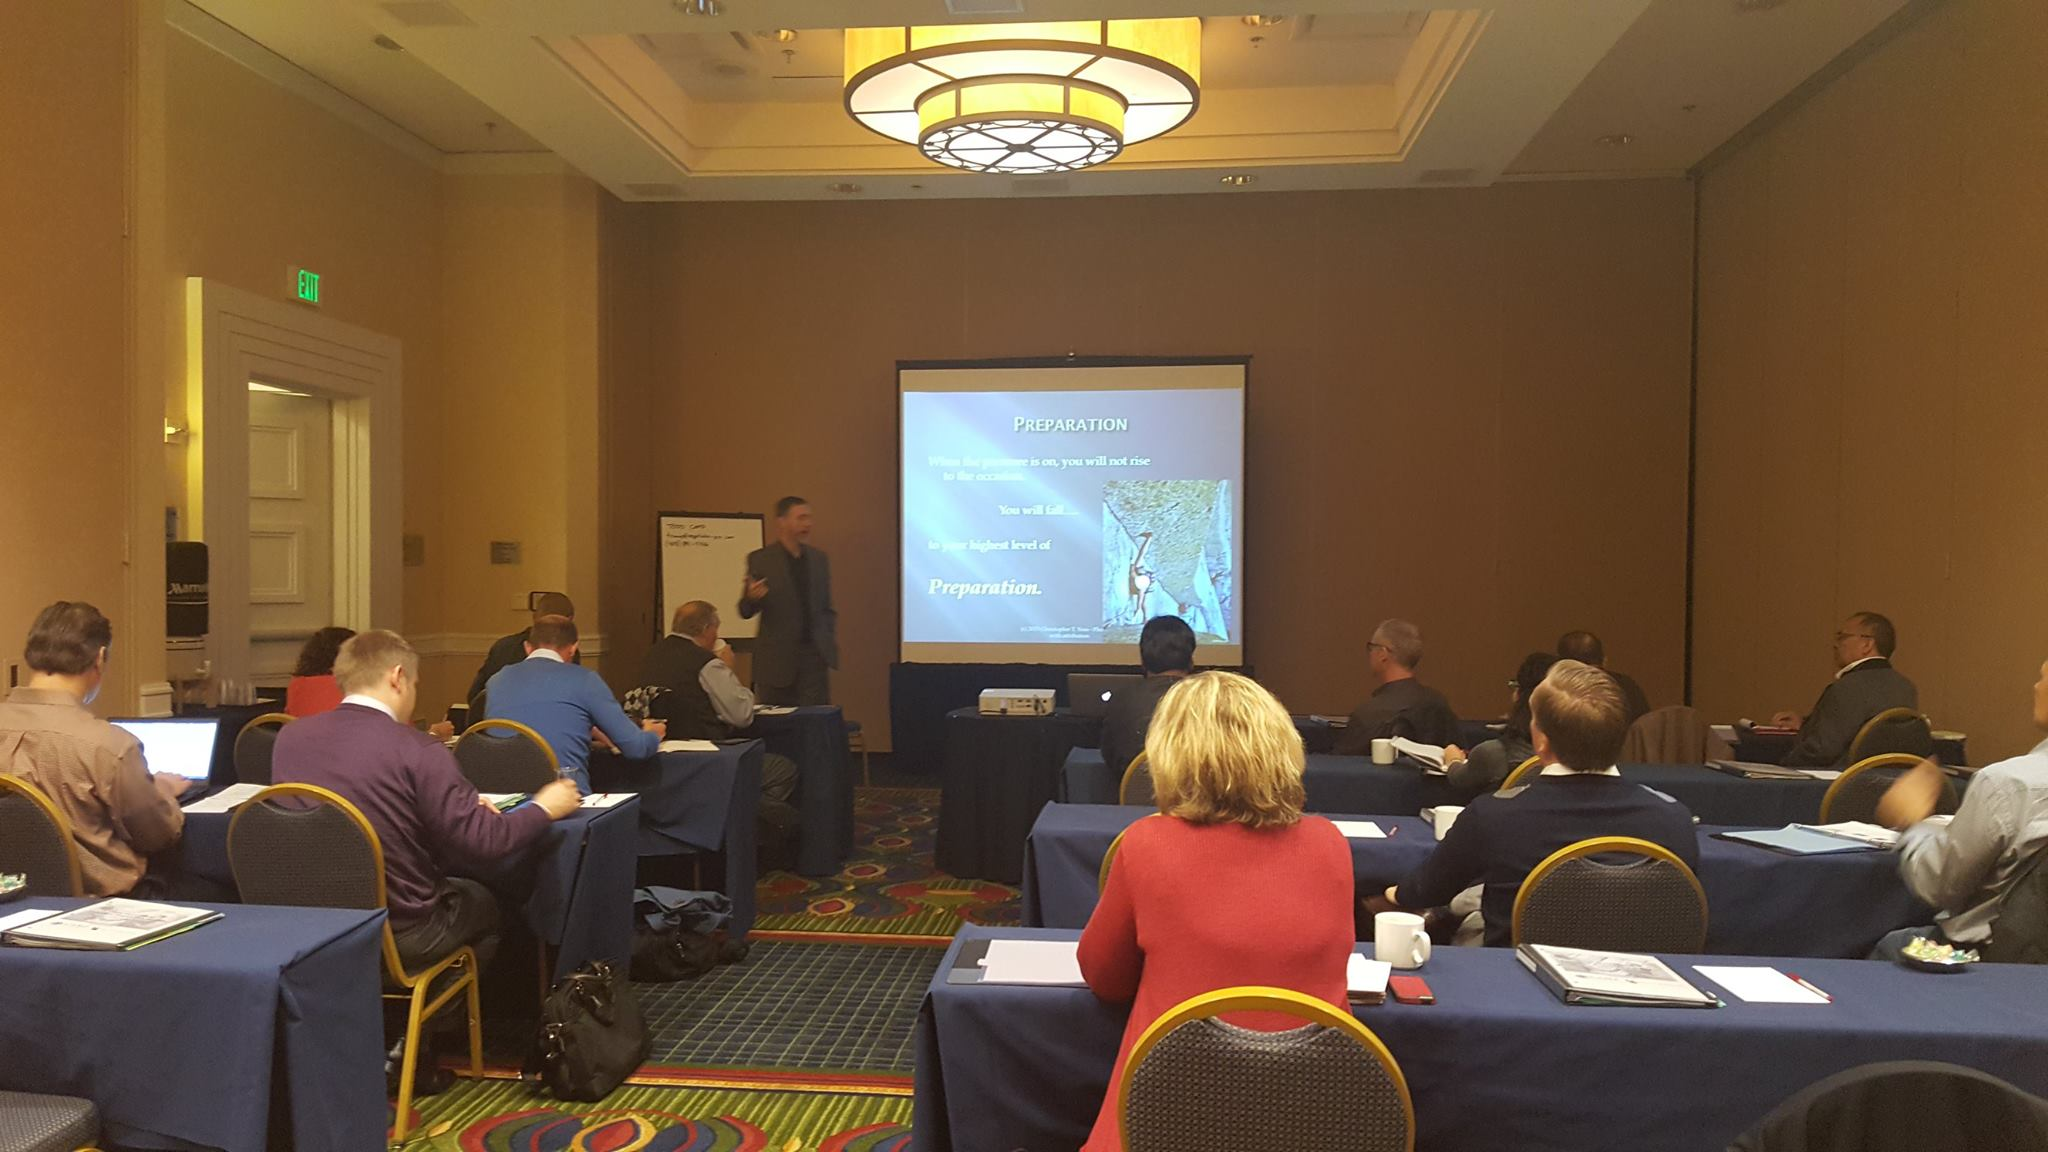 Chris Voss, live negotiation training